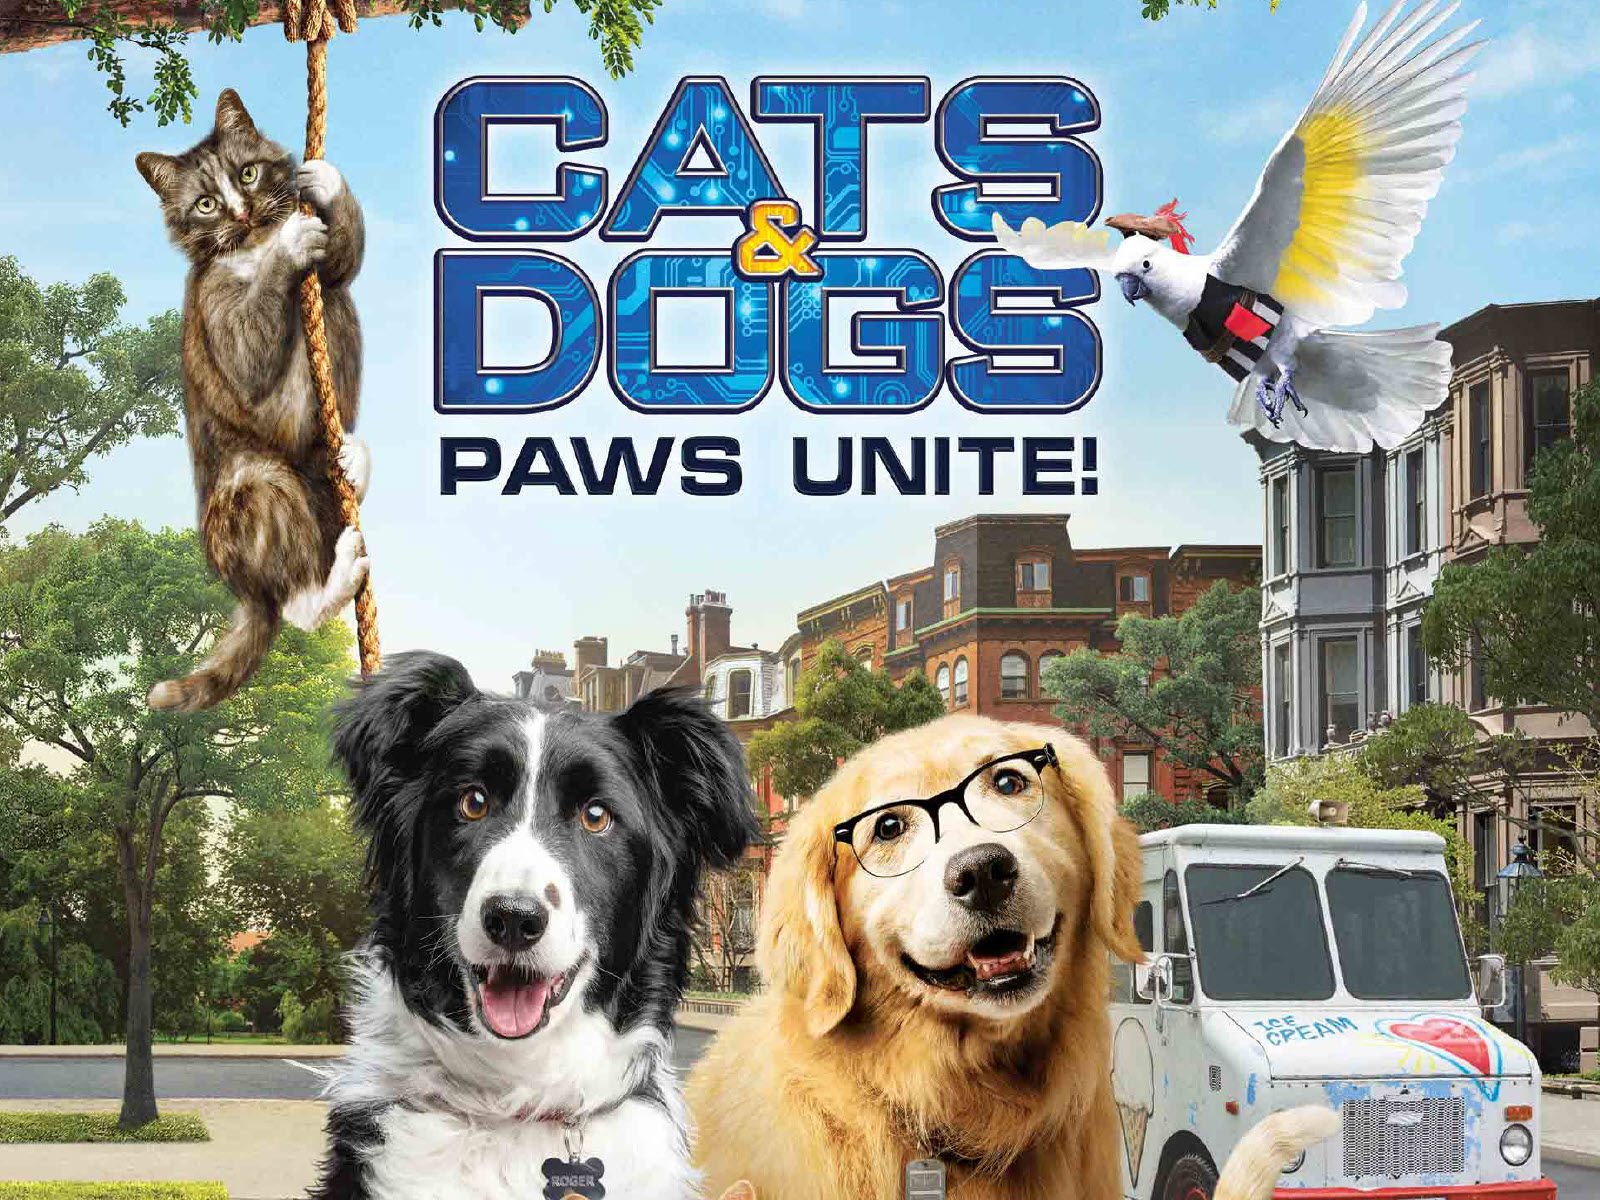 Get ready for the highly anticipated release of Cats & Dogs 3: Paws Unite! The worldwide battle between cats and dogs is BACK ON...